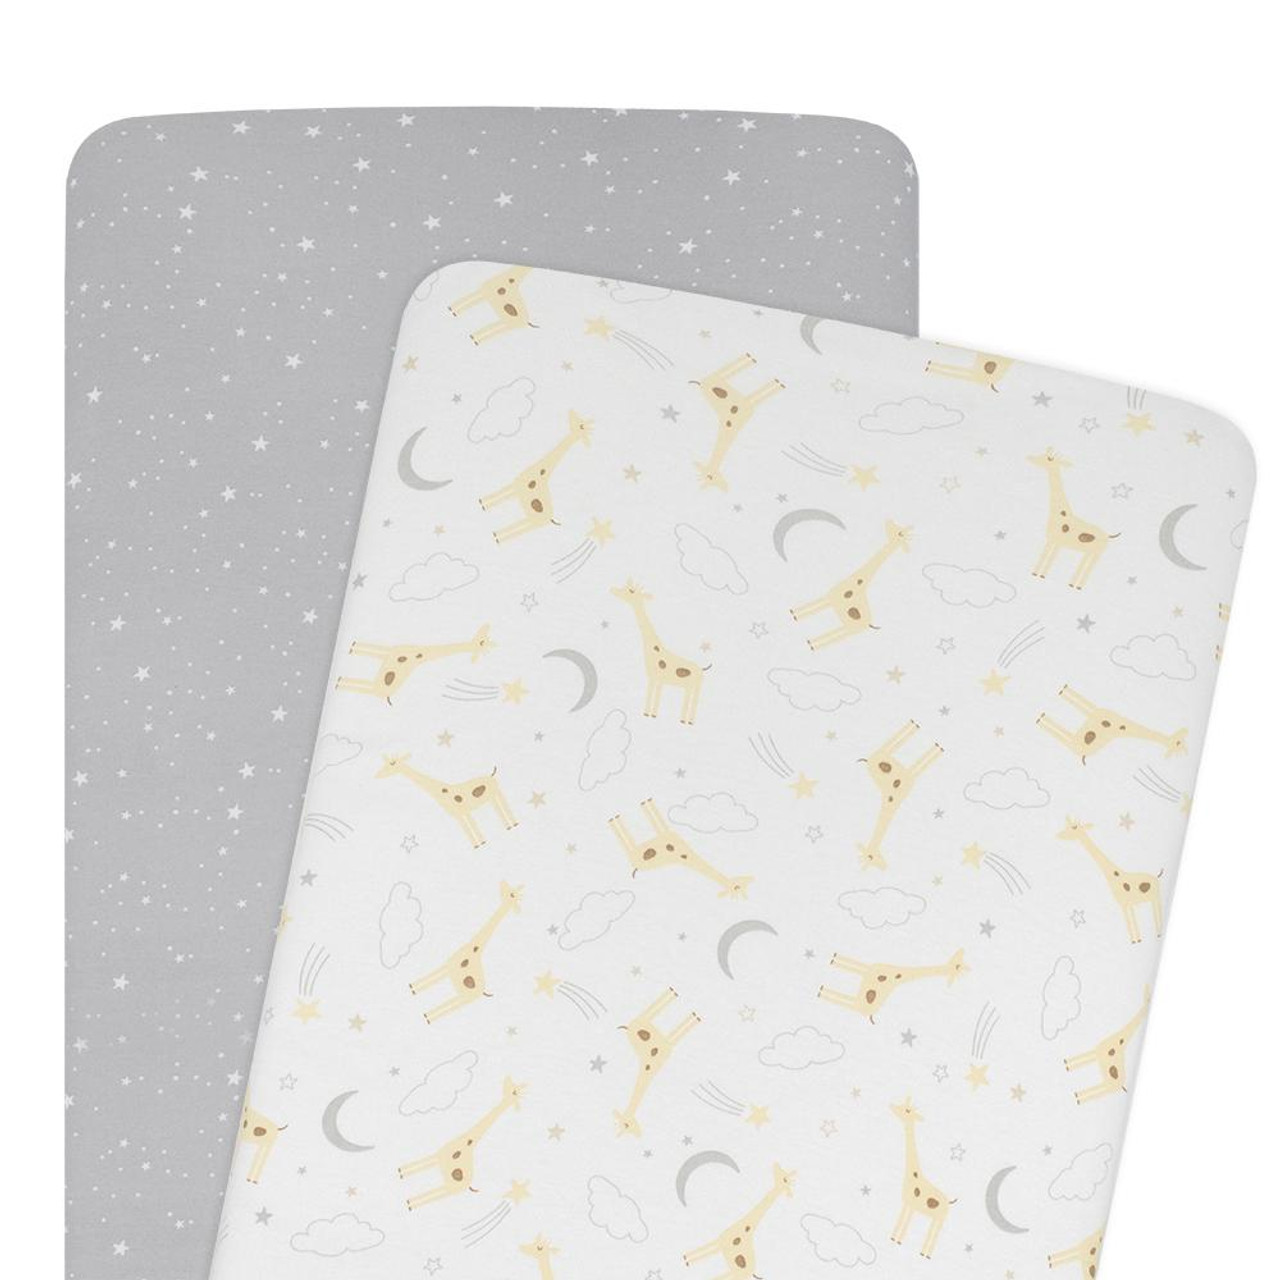 Living Textiles Cotton Cradle/ Co-sleeper Fitted Sheet 2pk at Baby Barn Discounts